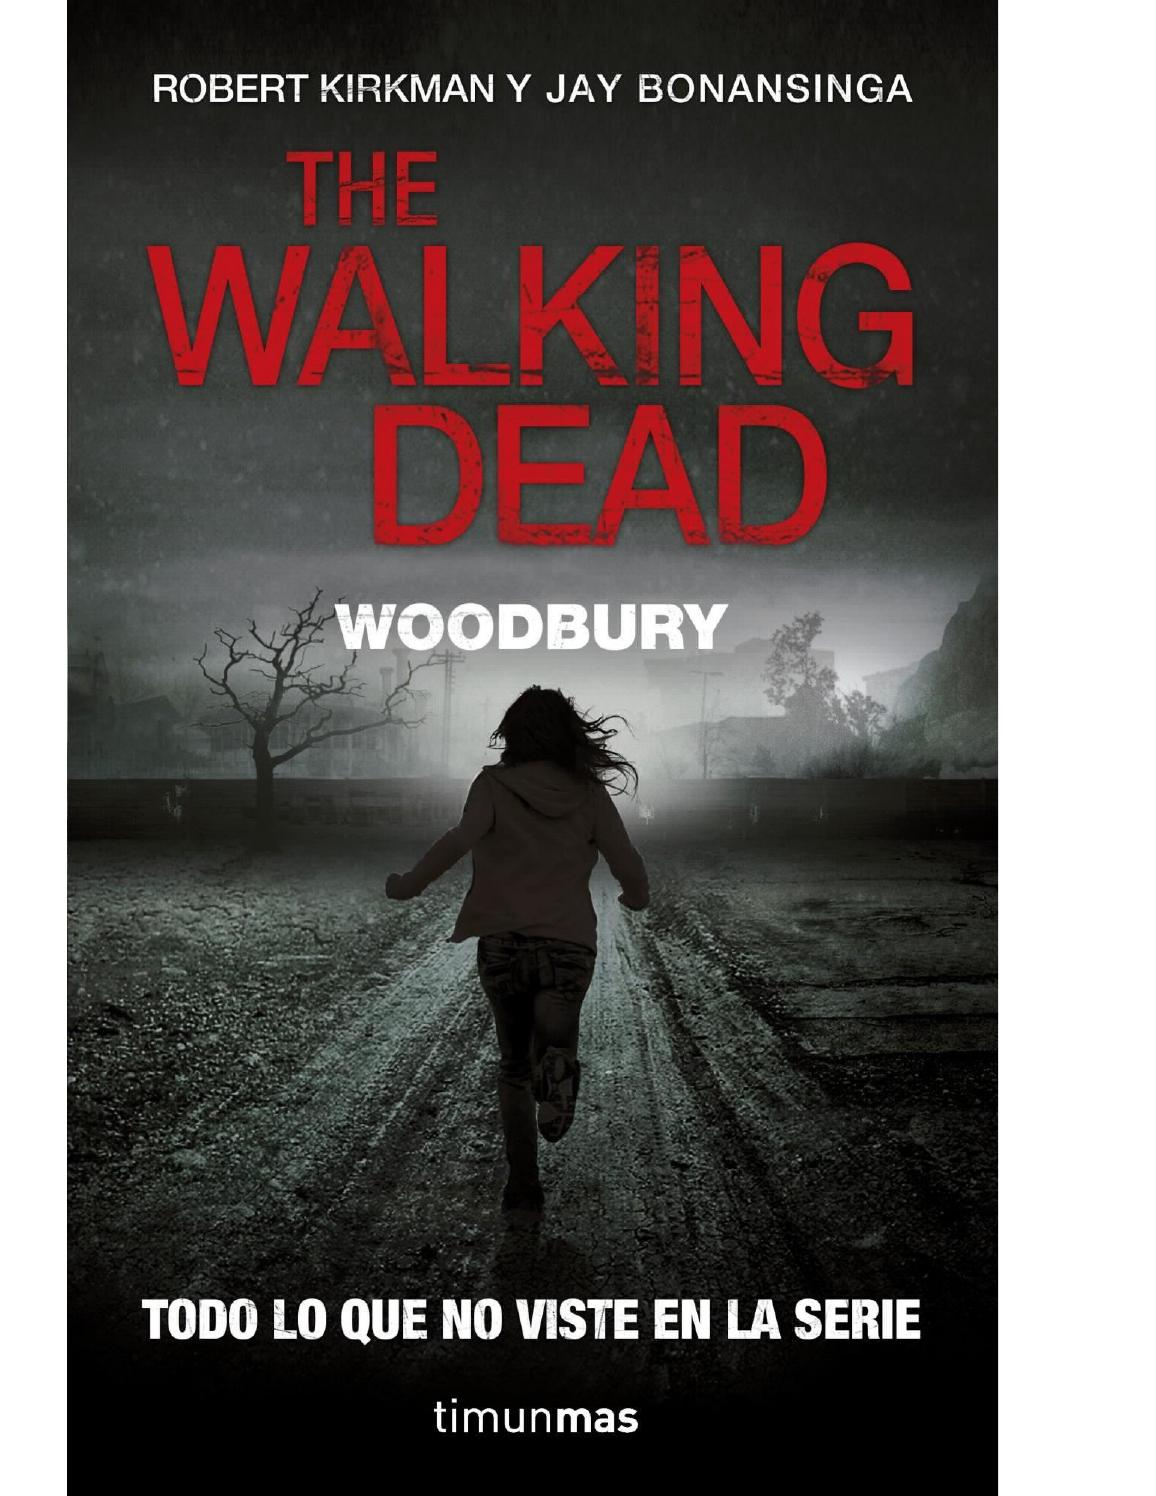 Niñata Puta Porno the walking dead woodburyjcvcproductions - issuu